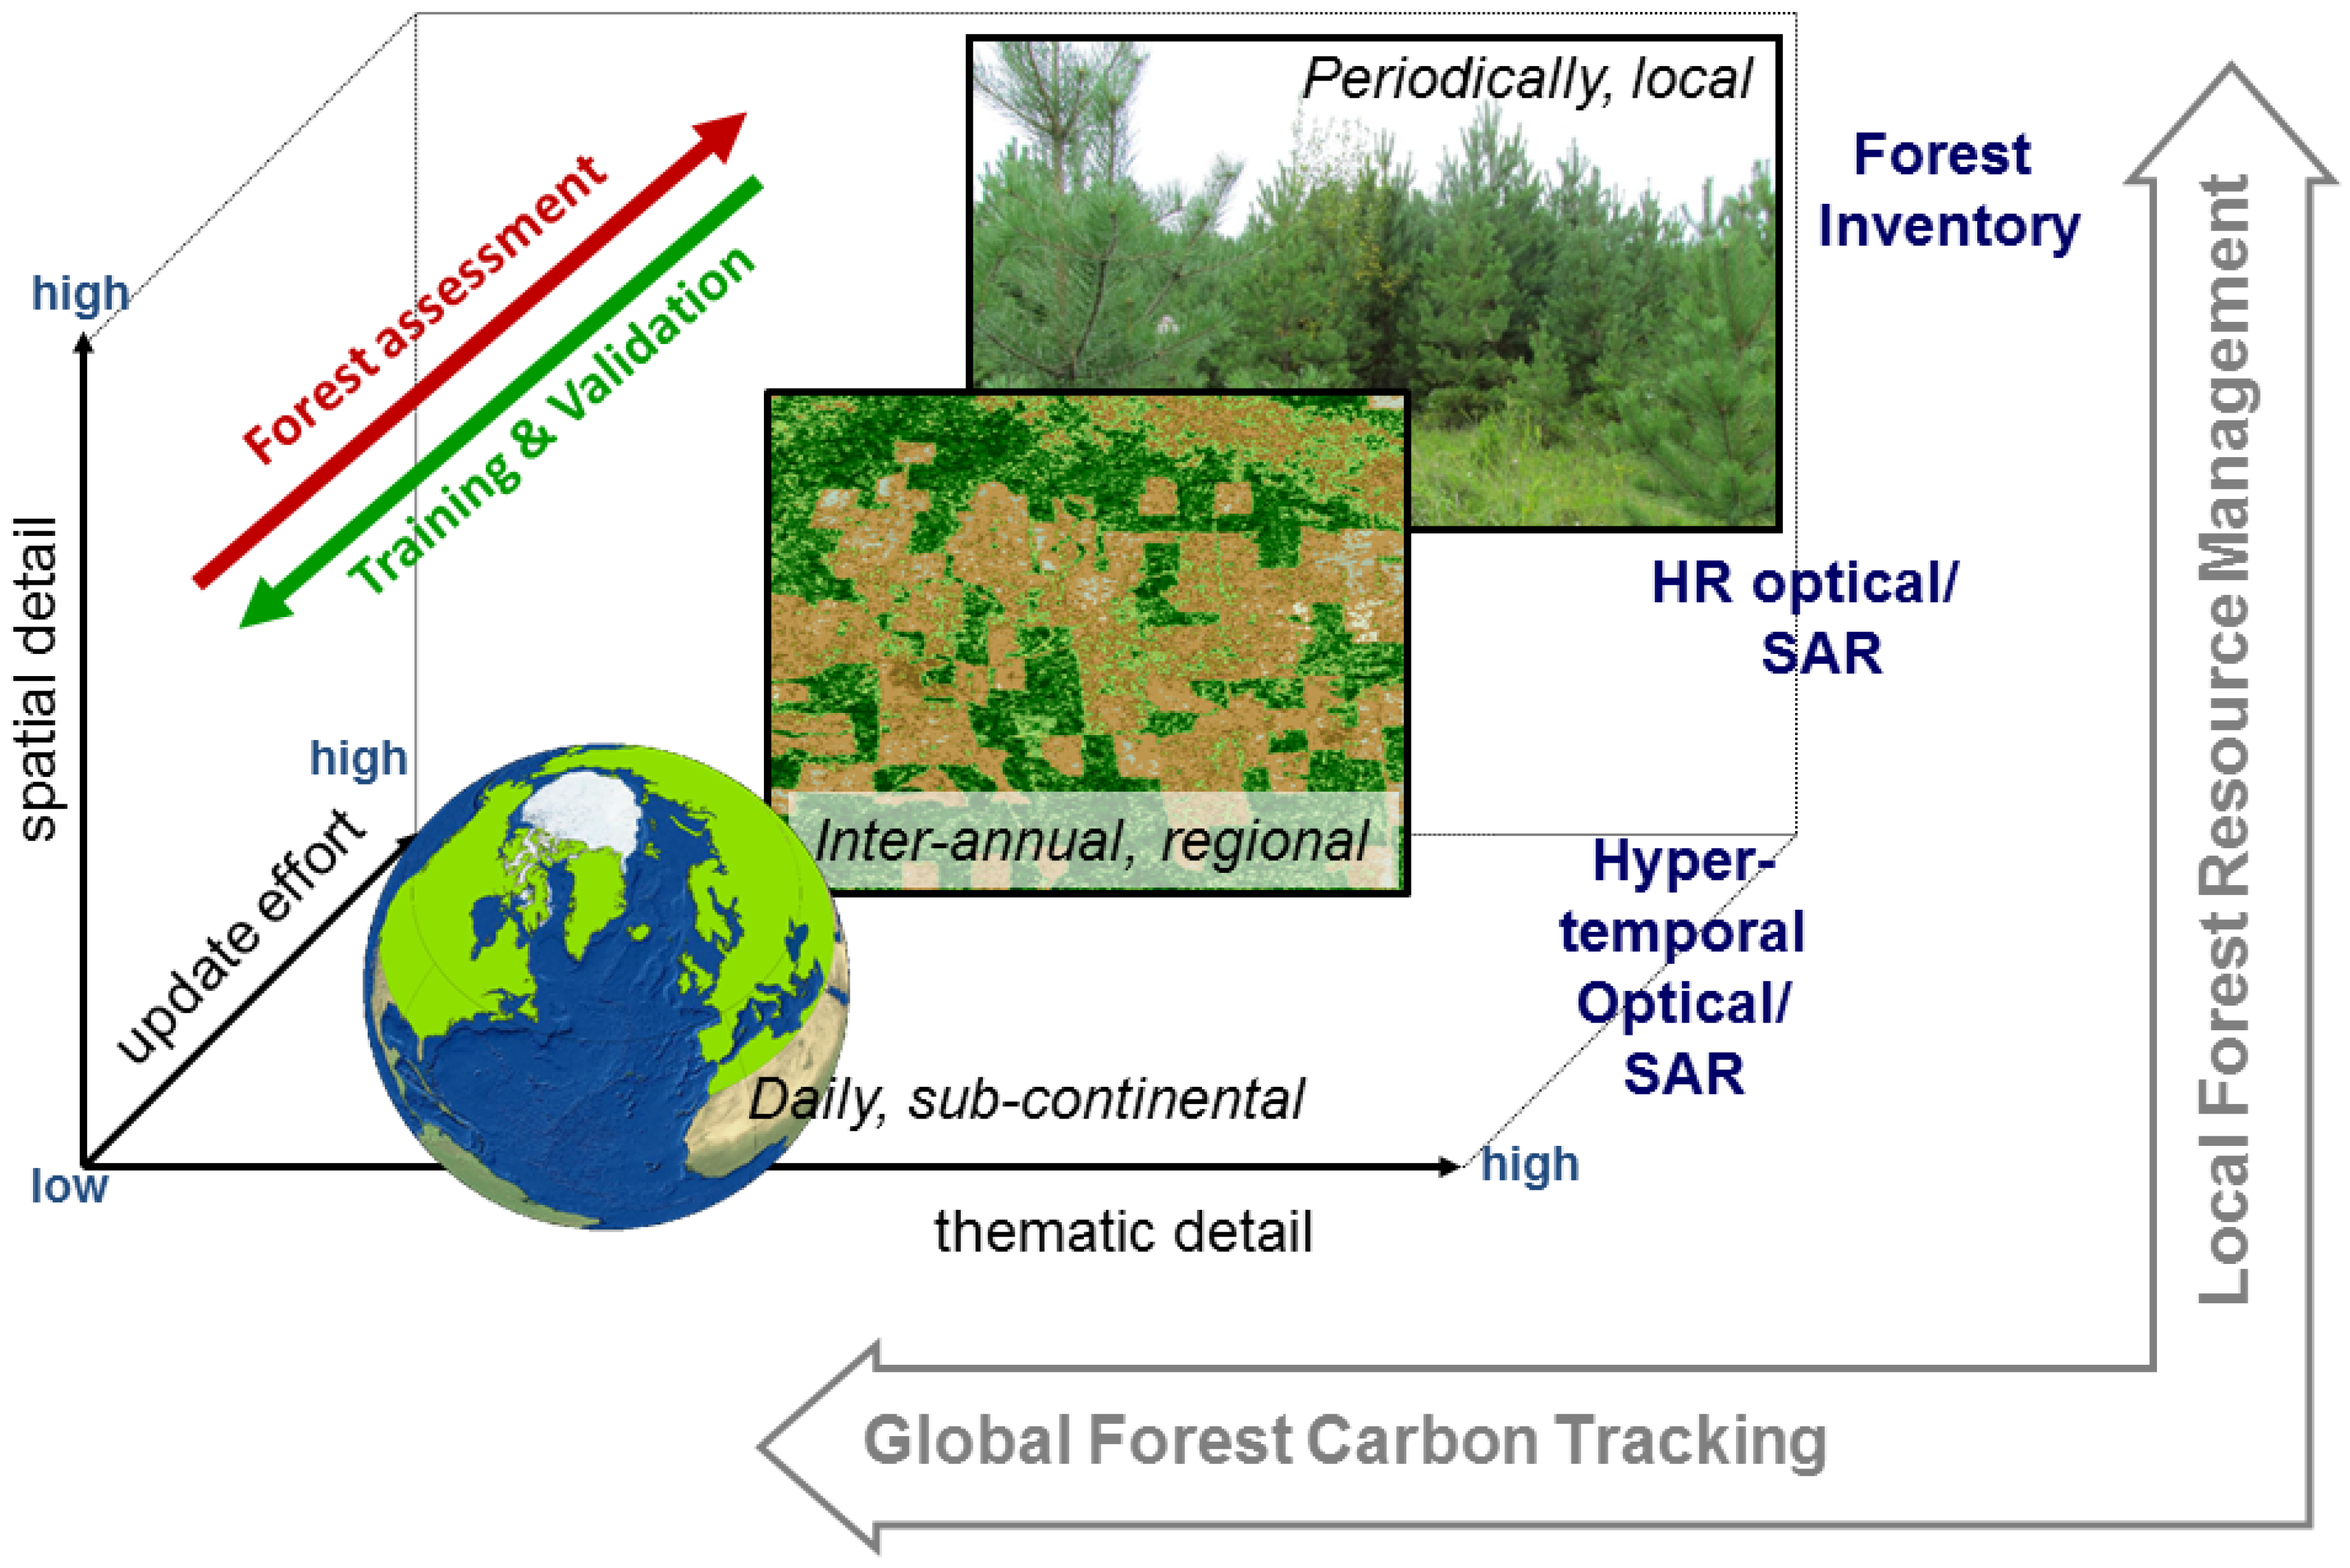 forest in graph